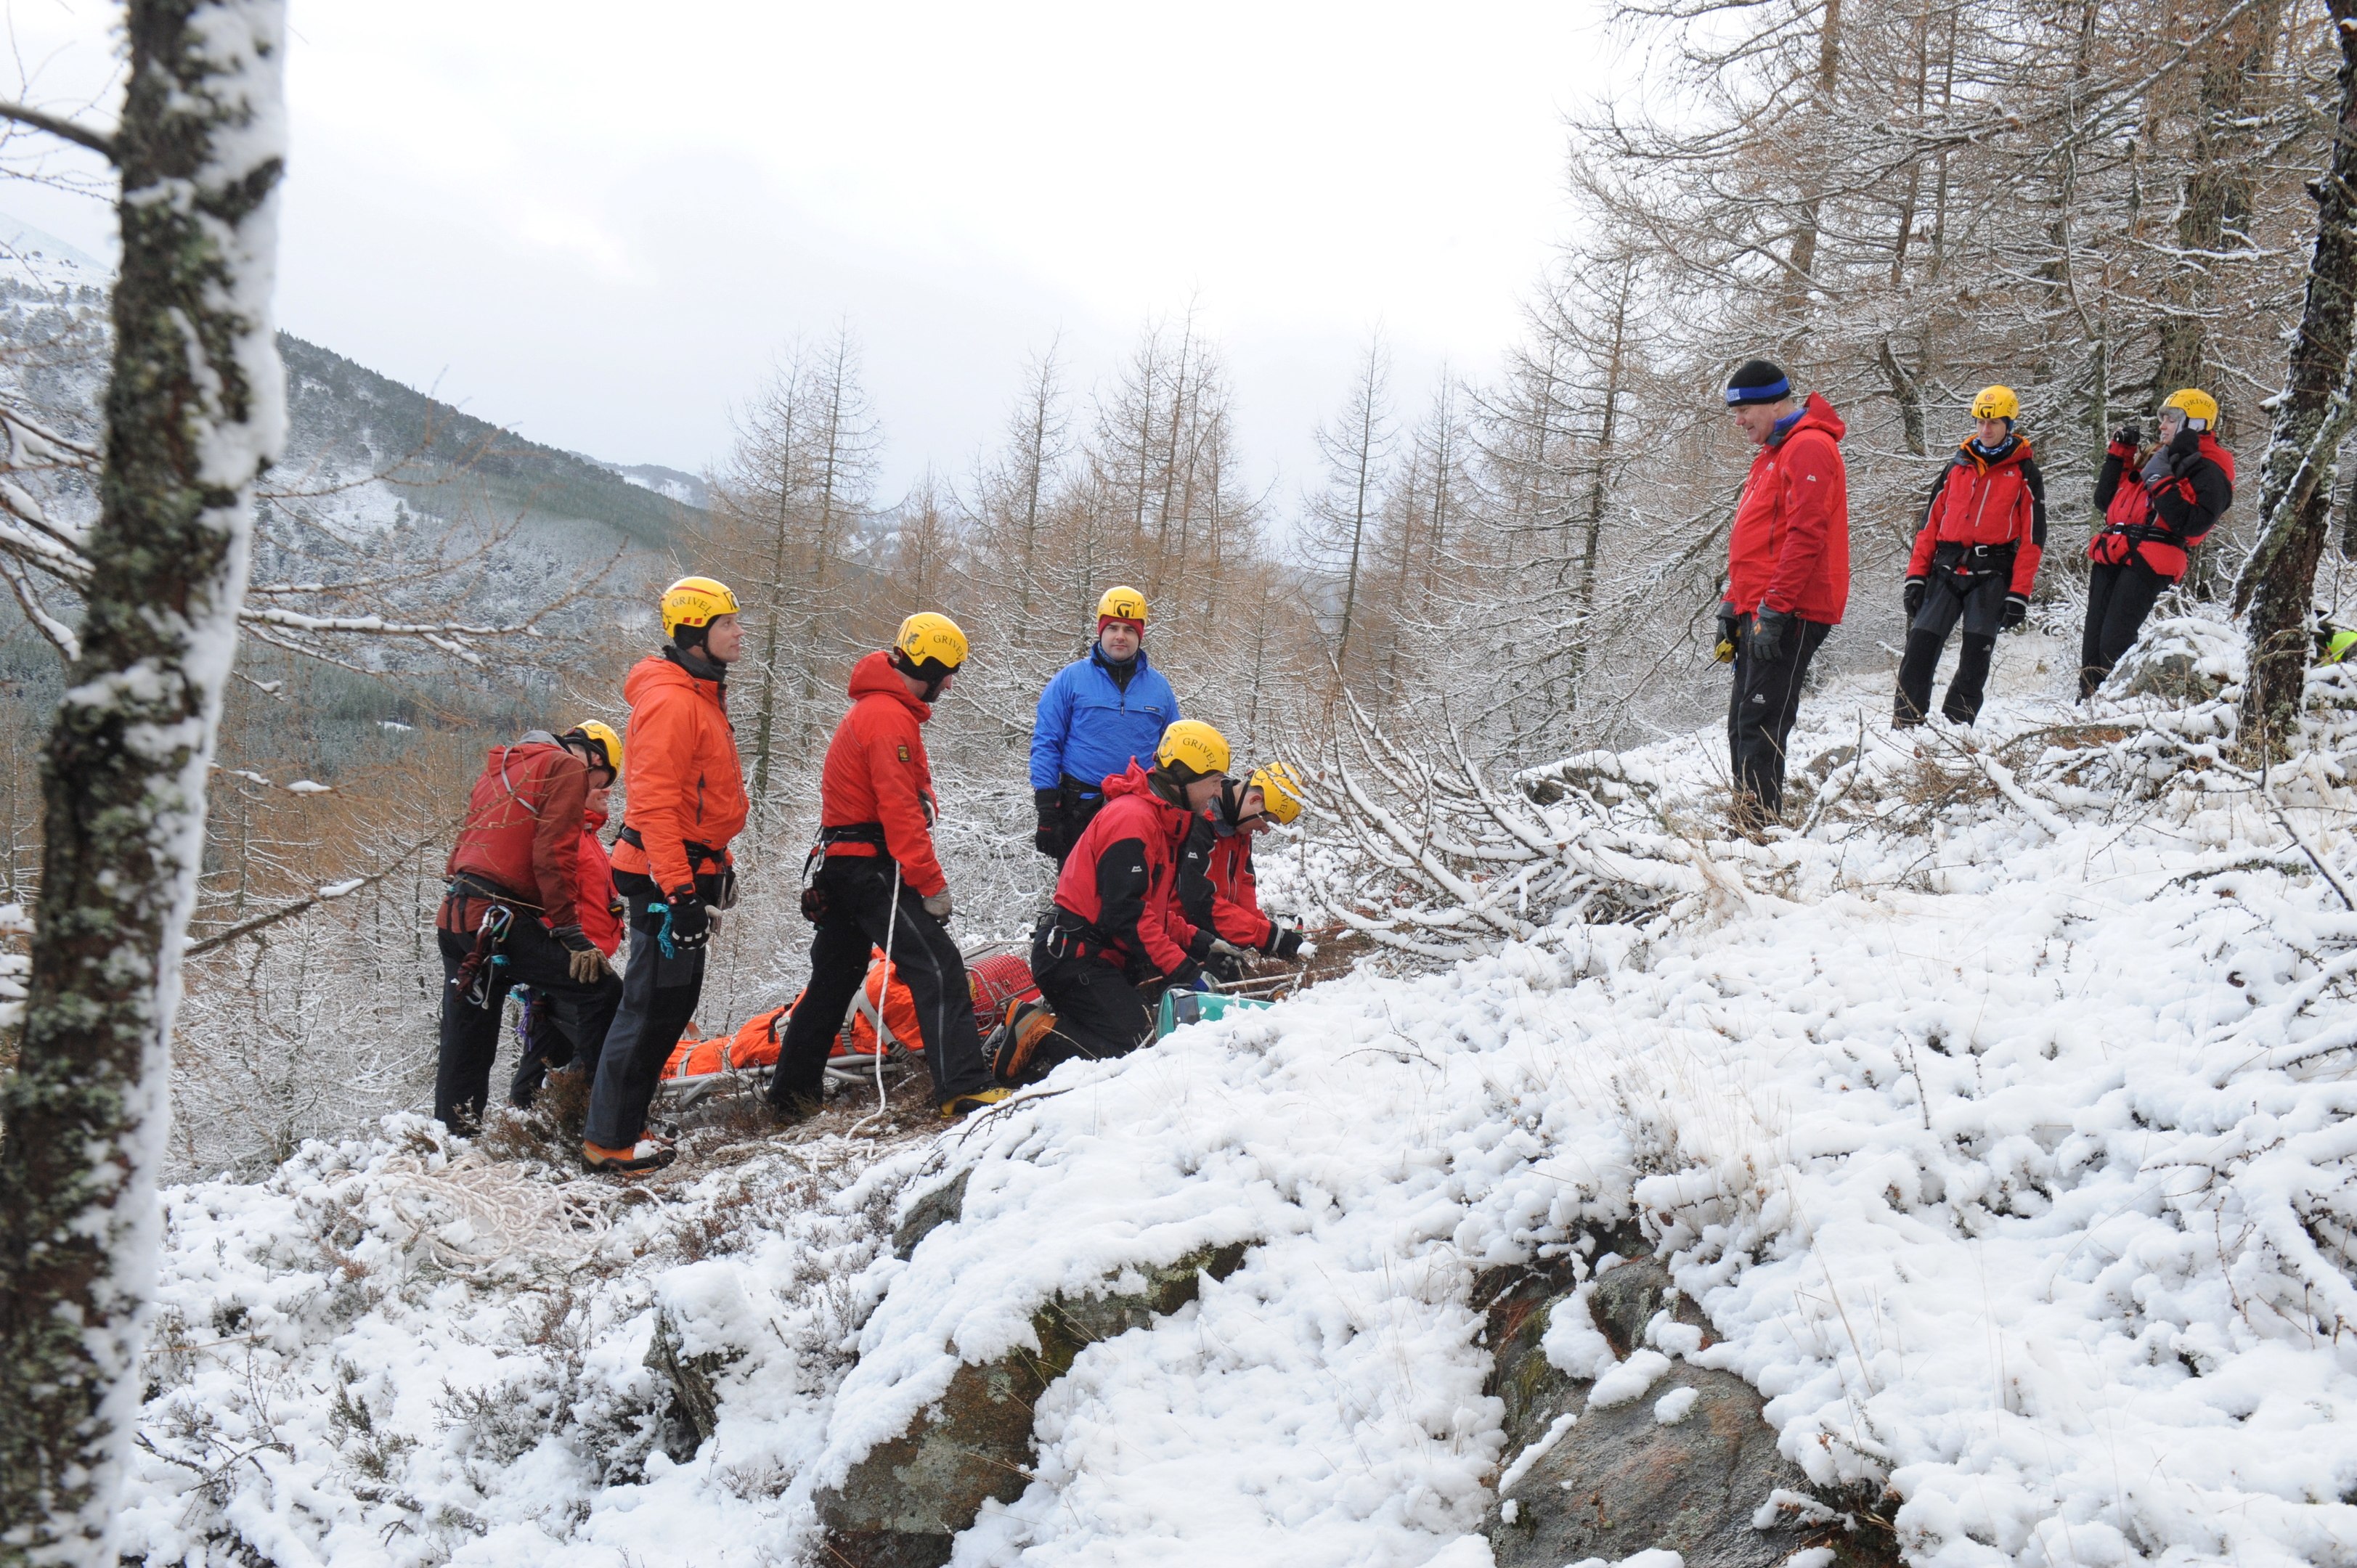 Braemar Mountain Rescue during a training exercise in the snowy hills.